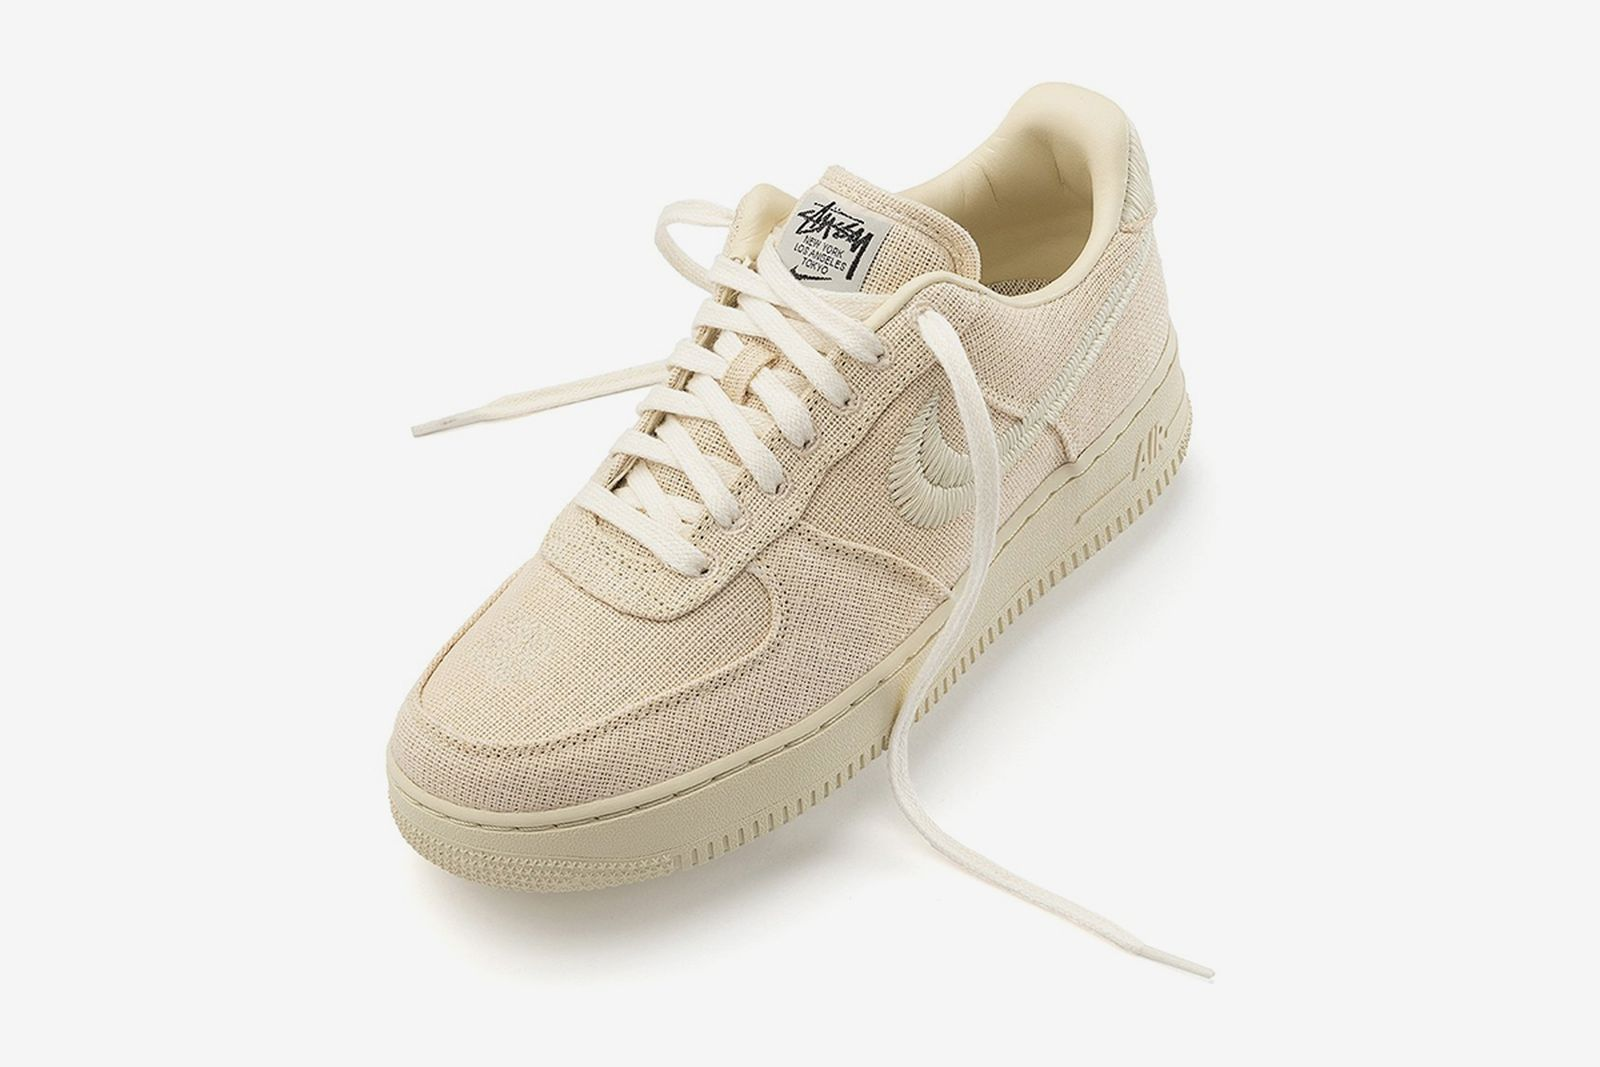 stussy-nike-air-force-1-release-date-price-02